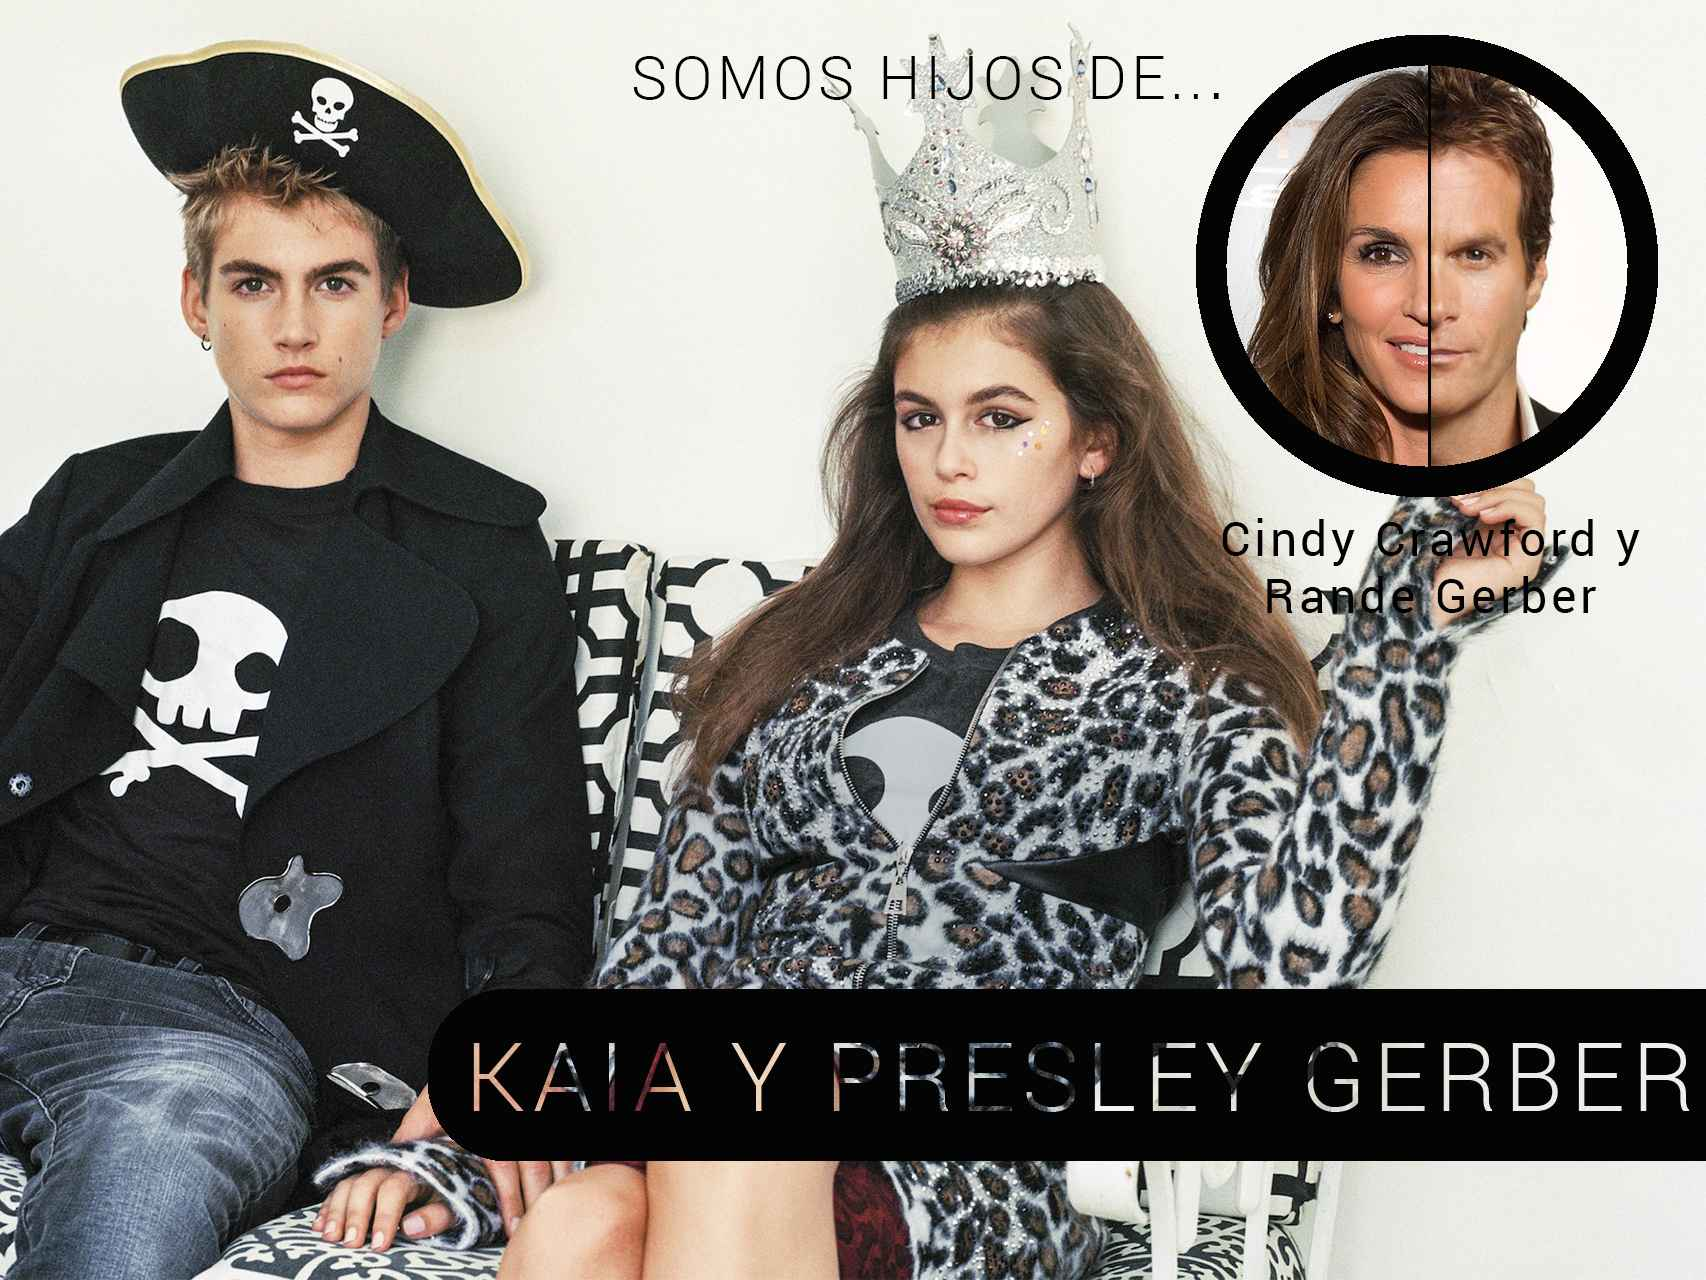 Kaia y Presley Gerber en el CR Fashion Book